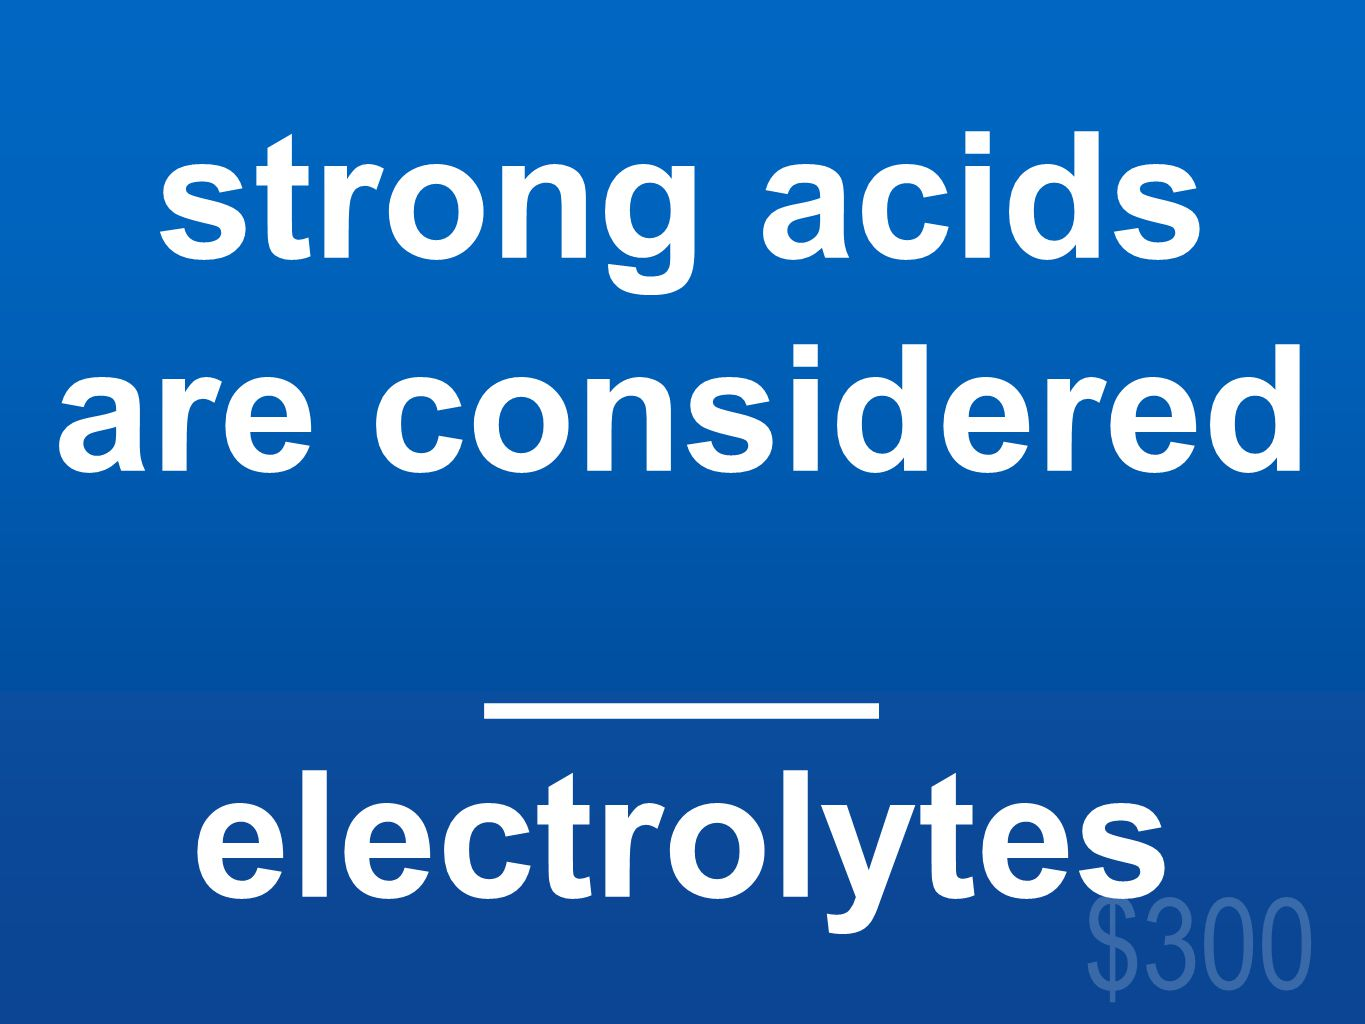 $300 strong acids are considered ____ electrolytes